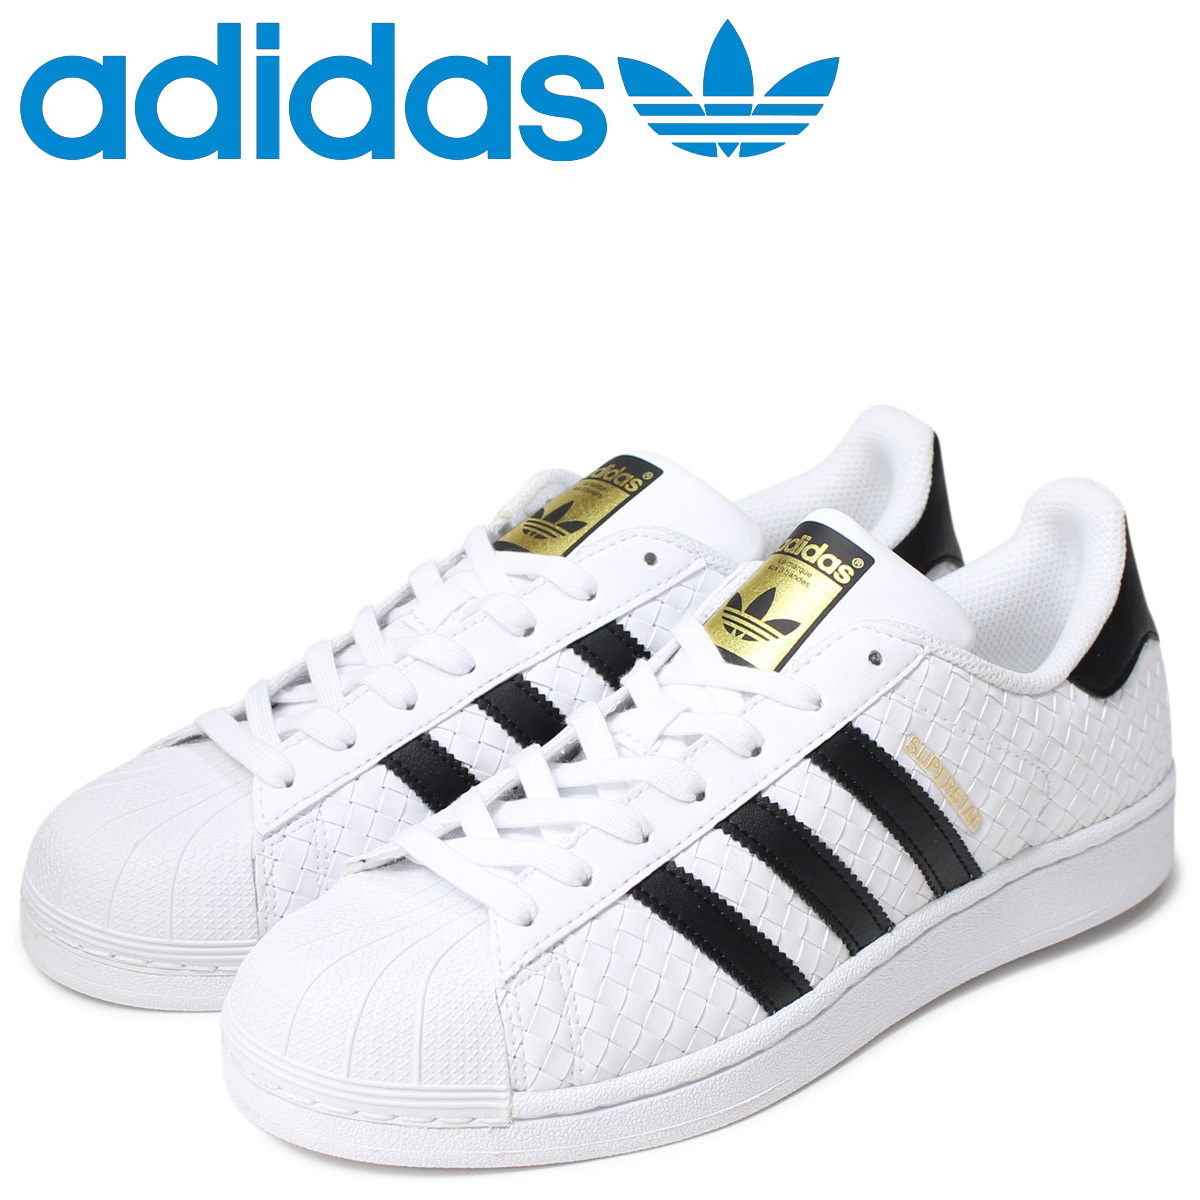 adidas Originals SUPERSTAR superstar Adidas originals men sneakers BB1172 shoes white